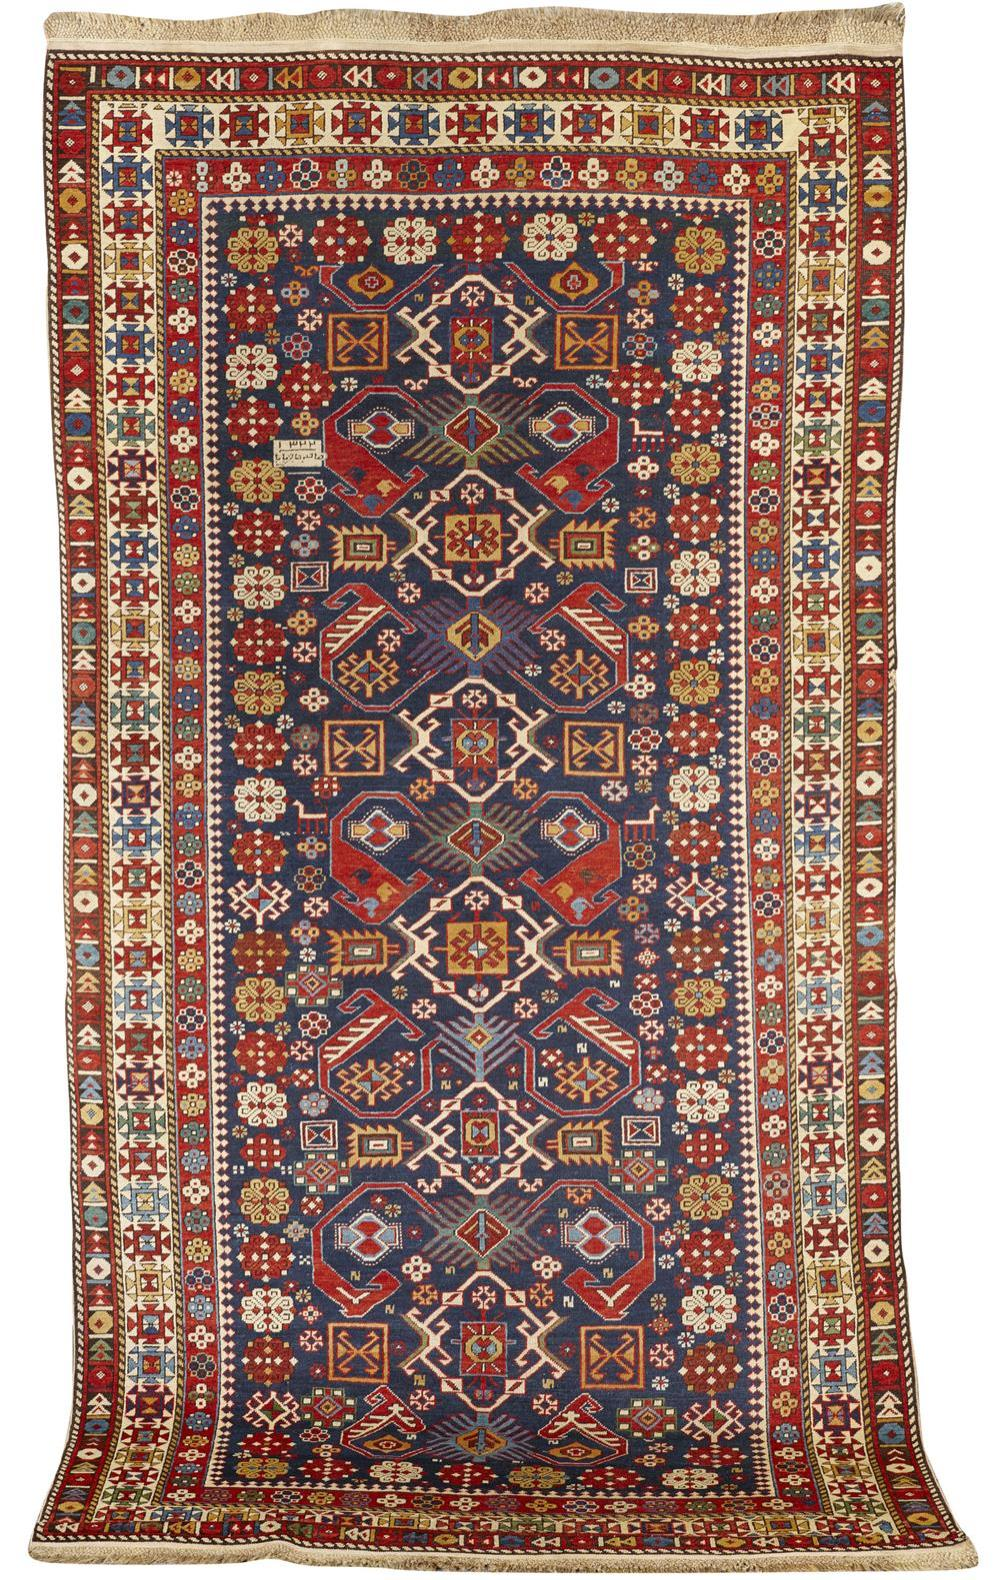 Shirvan Rug, Caucasus, dated 1322 (1905) and inscribed; 9 ft. x 4 ft. 8 in.